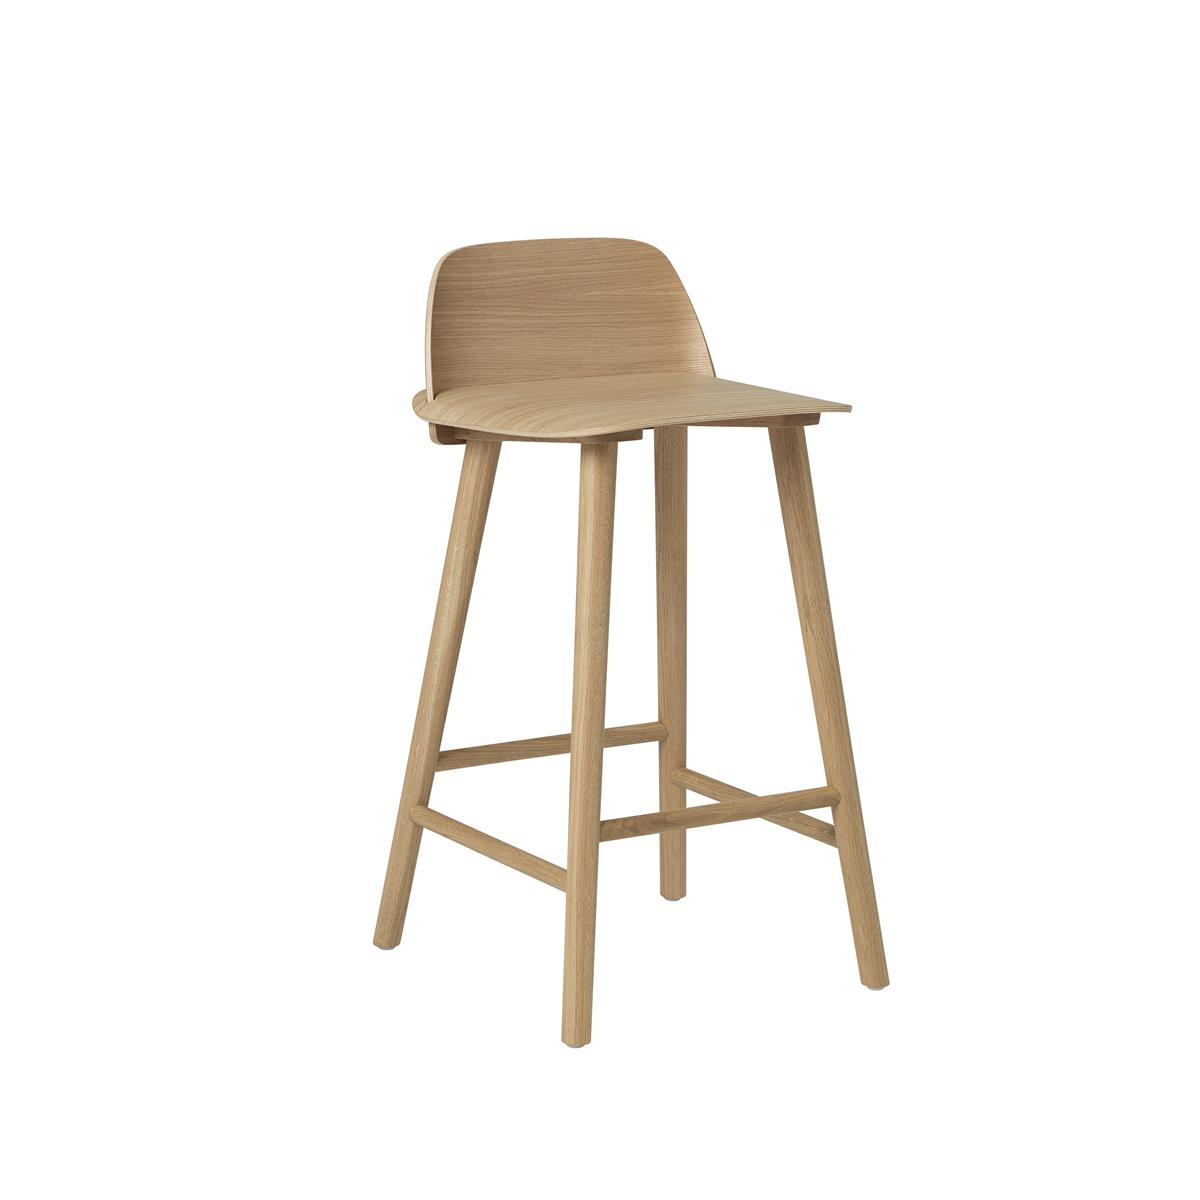 Nerd Bar Stool H65 - Oak